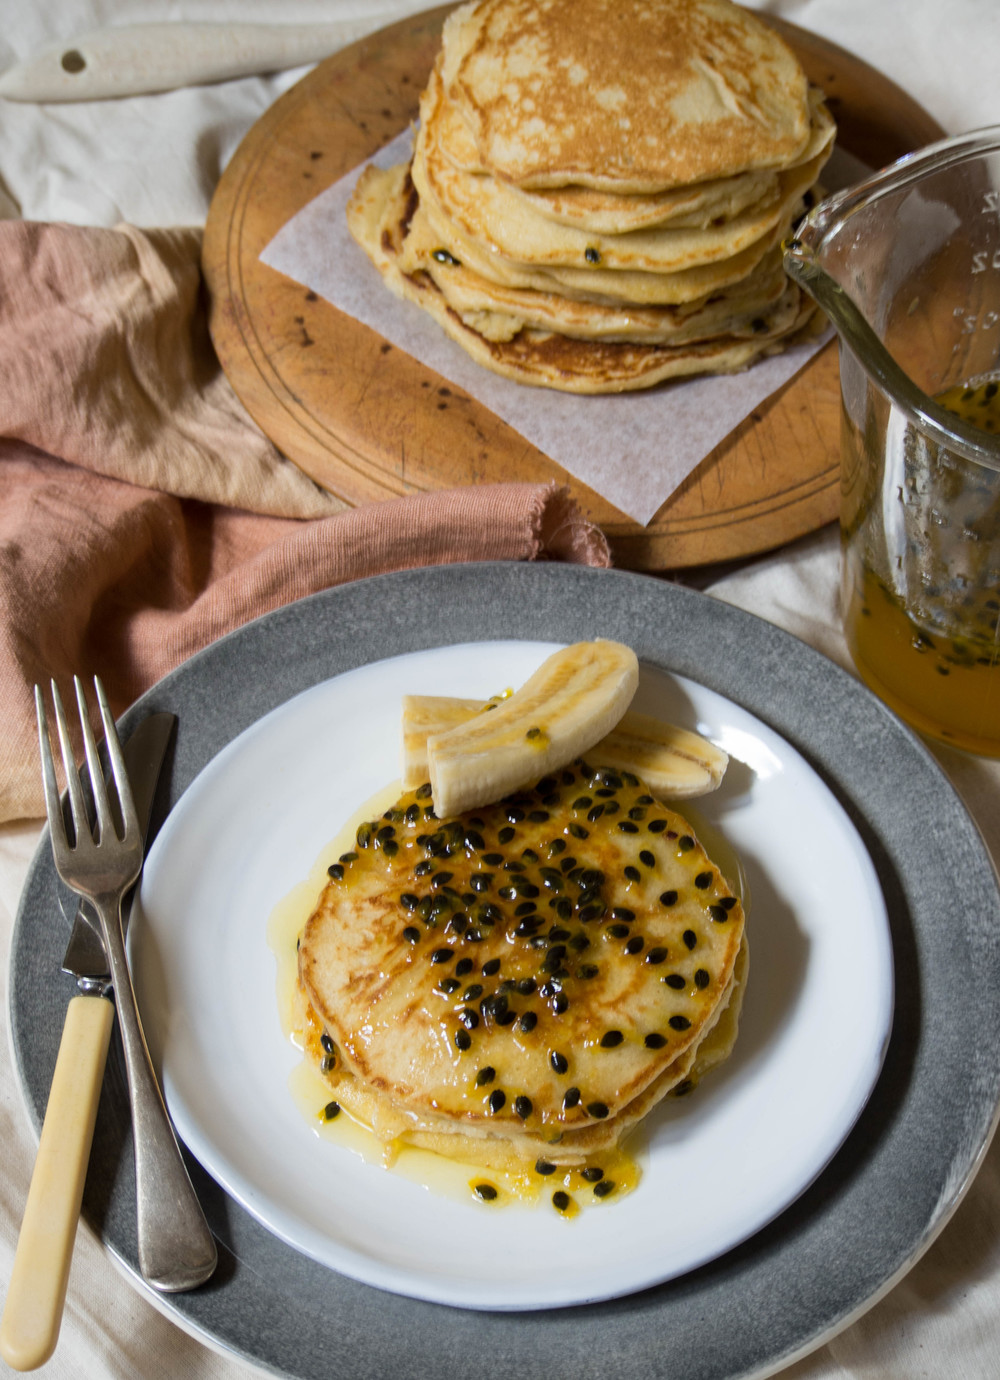 Passionfruit Pancakes 4 - Kulinary Adventures of Kath